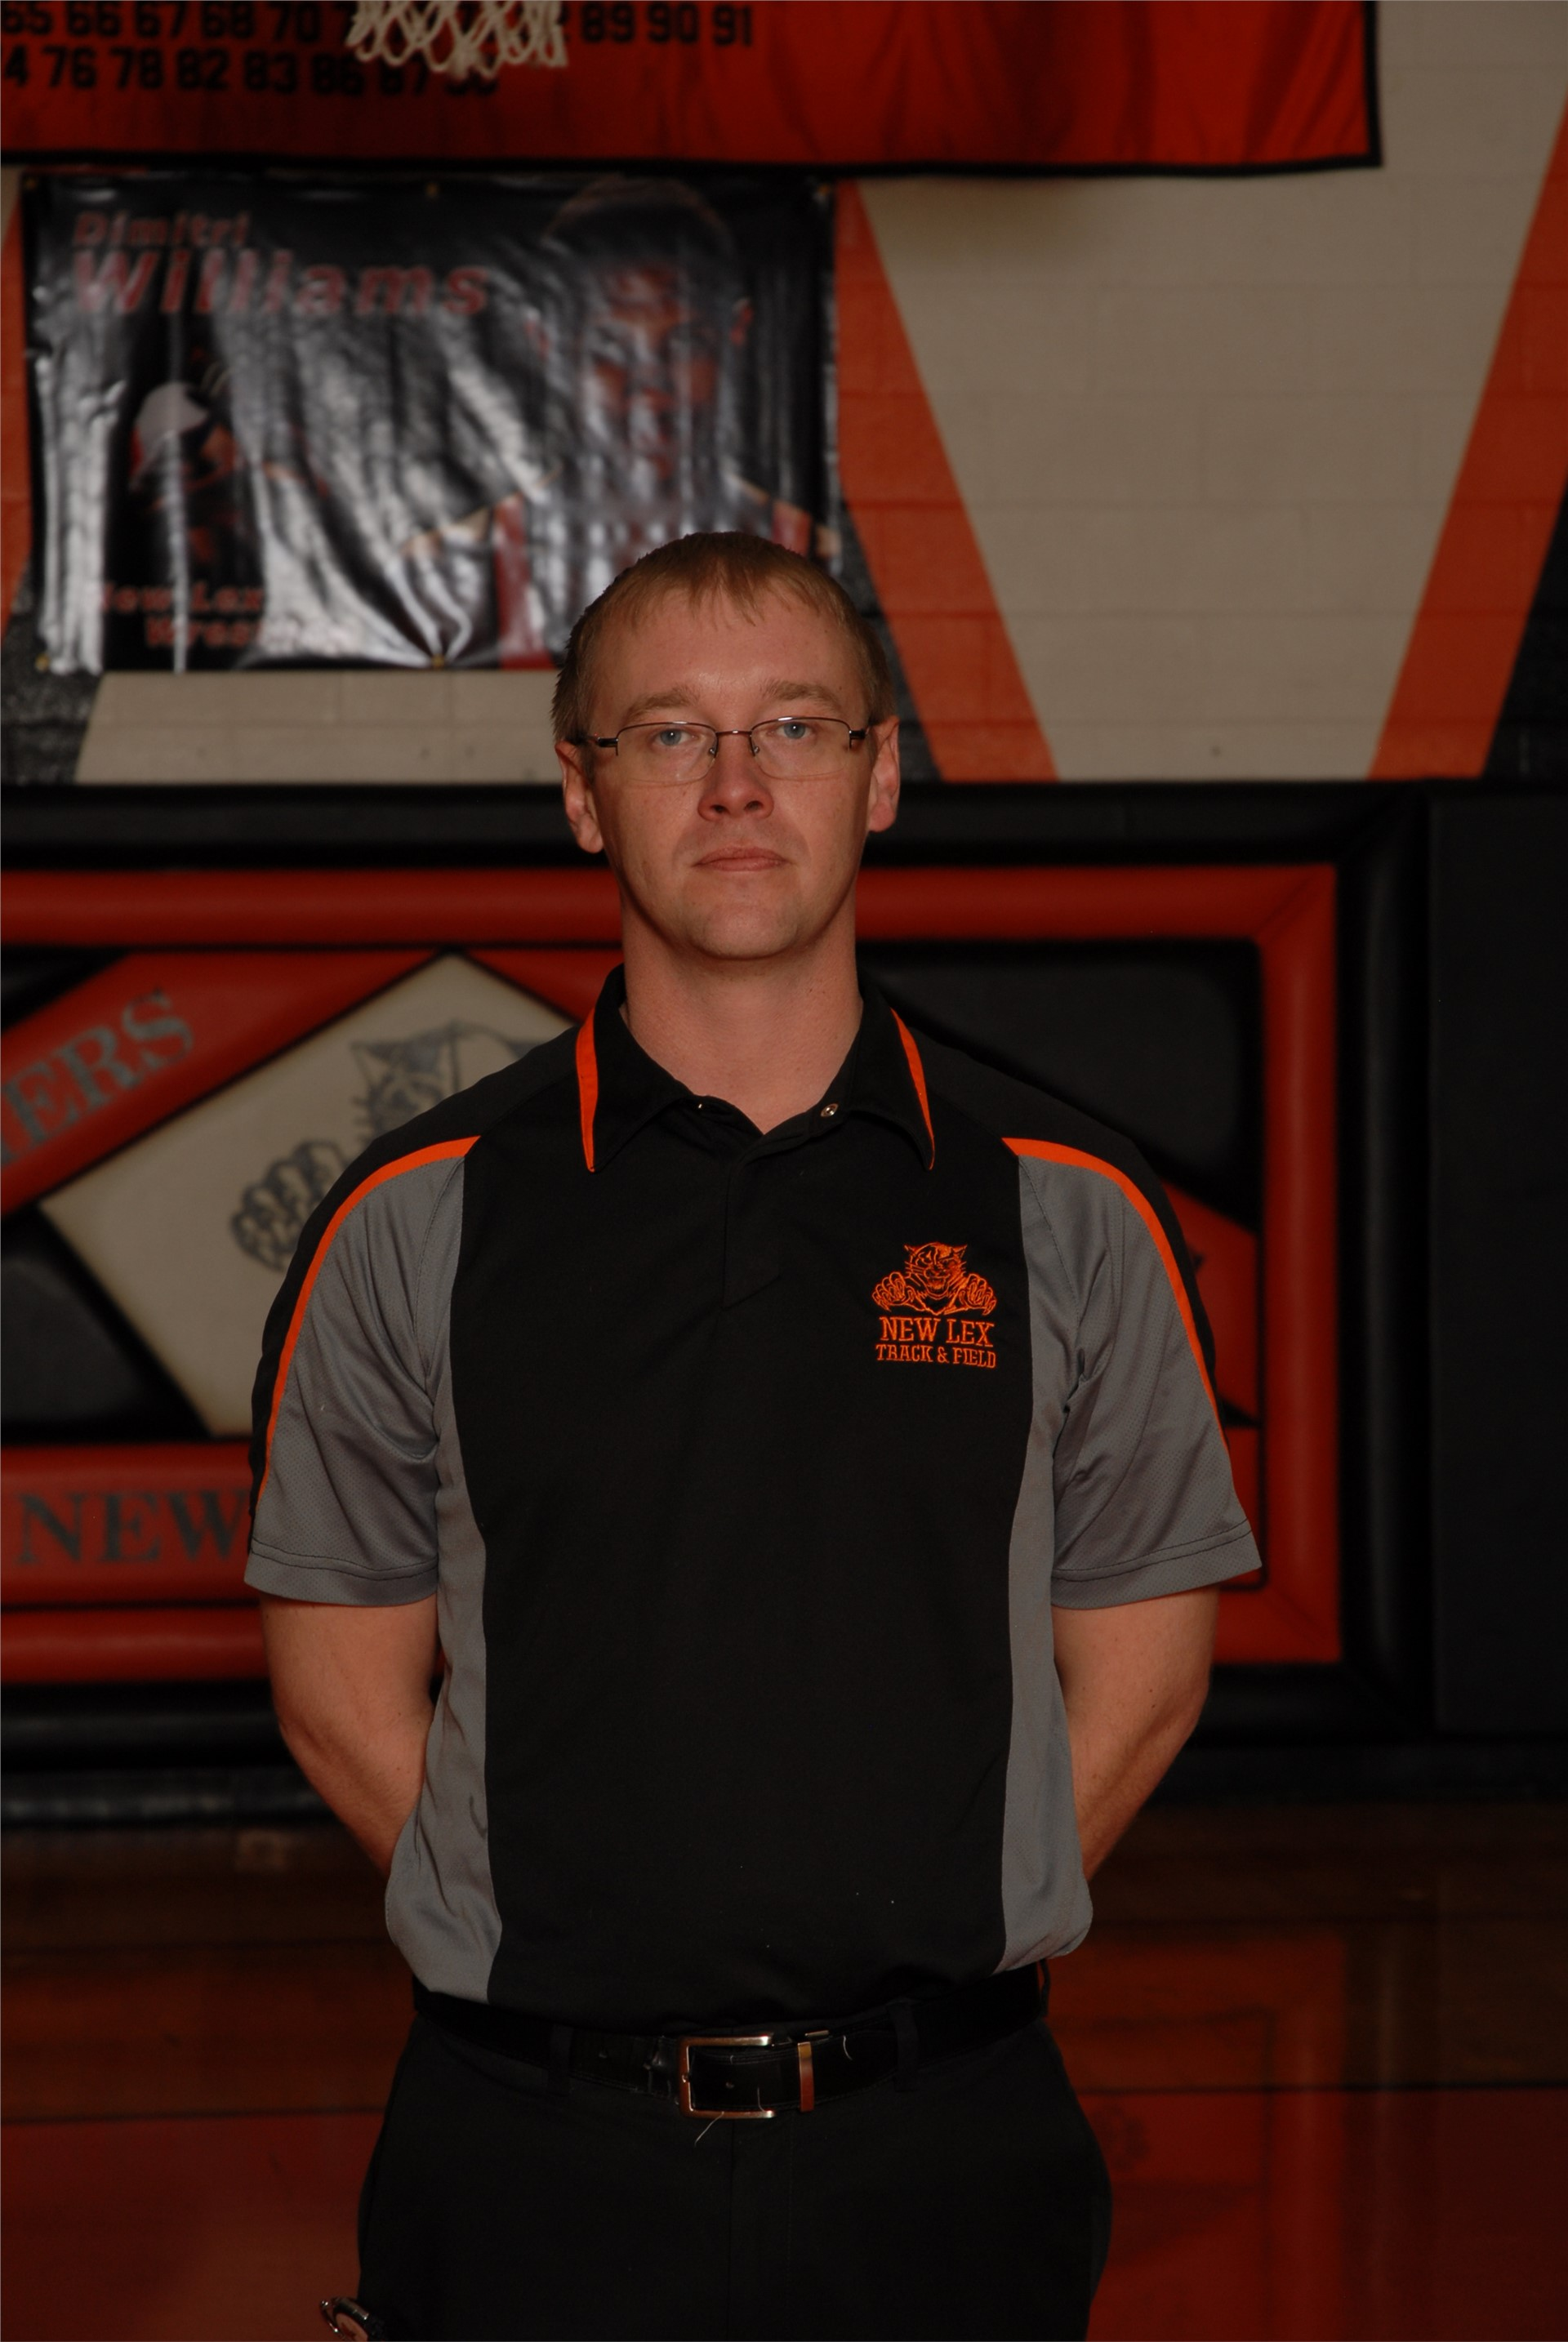 HEAD COACH VERMILLION